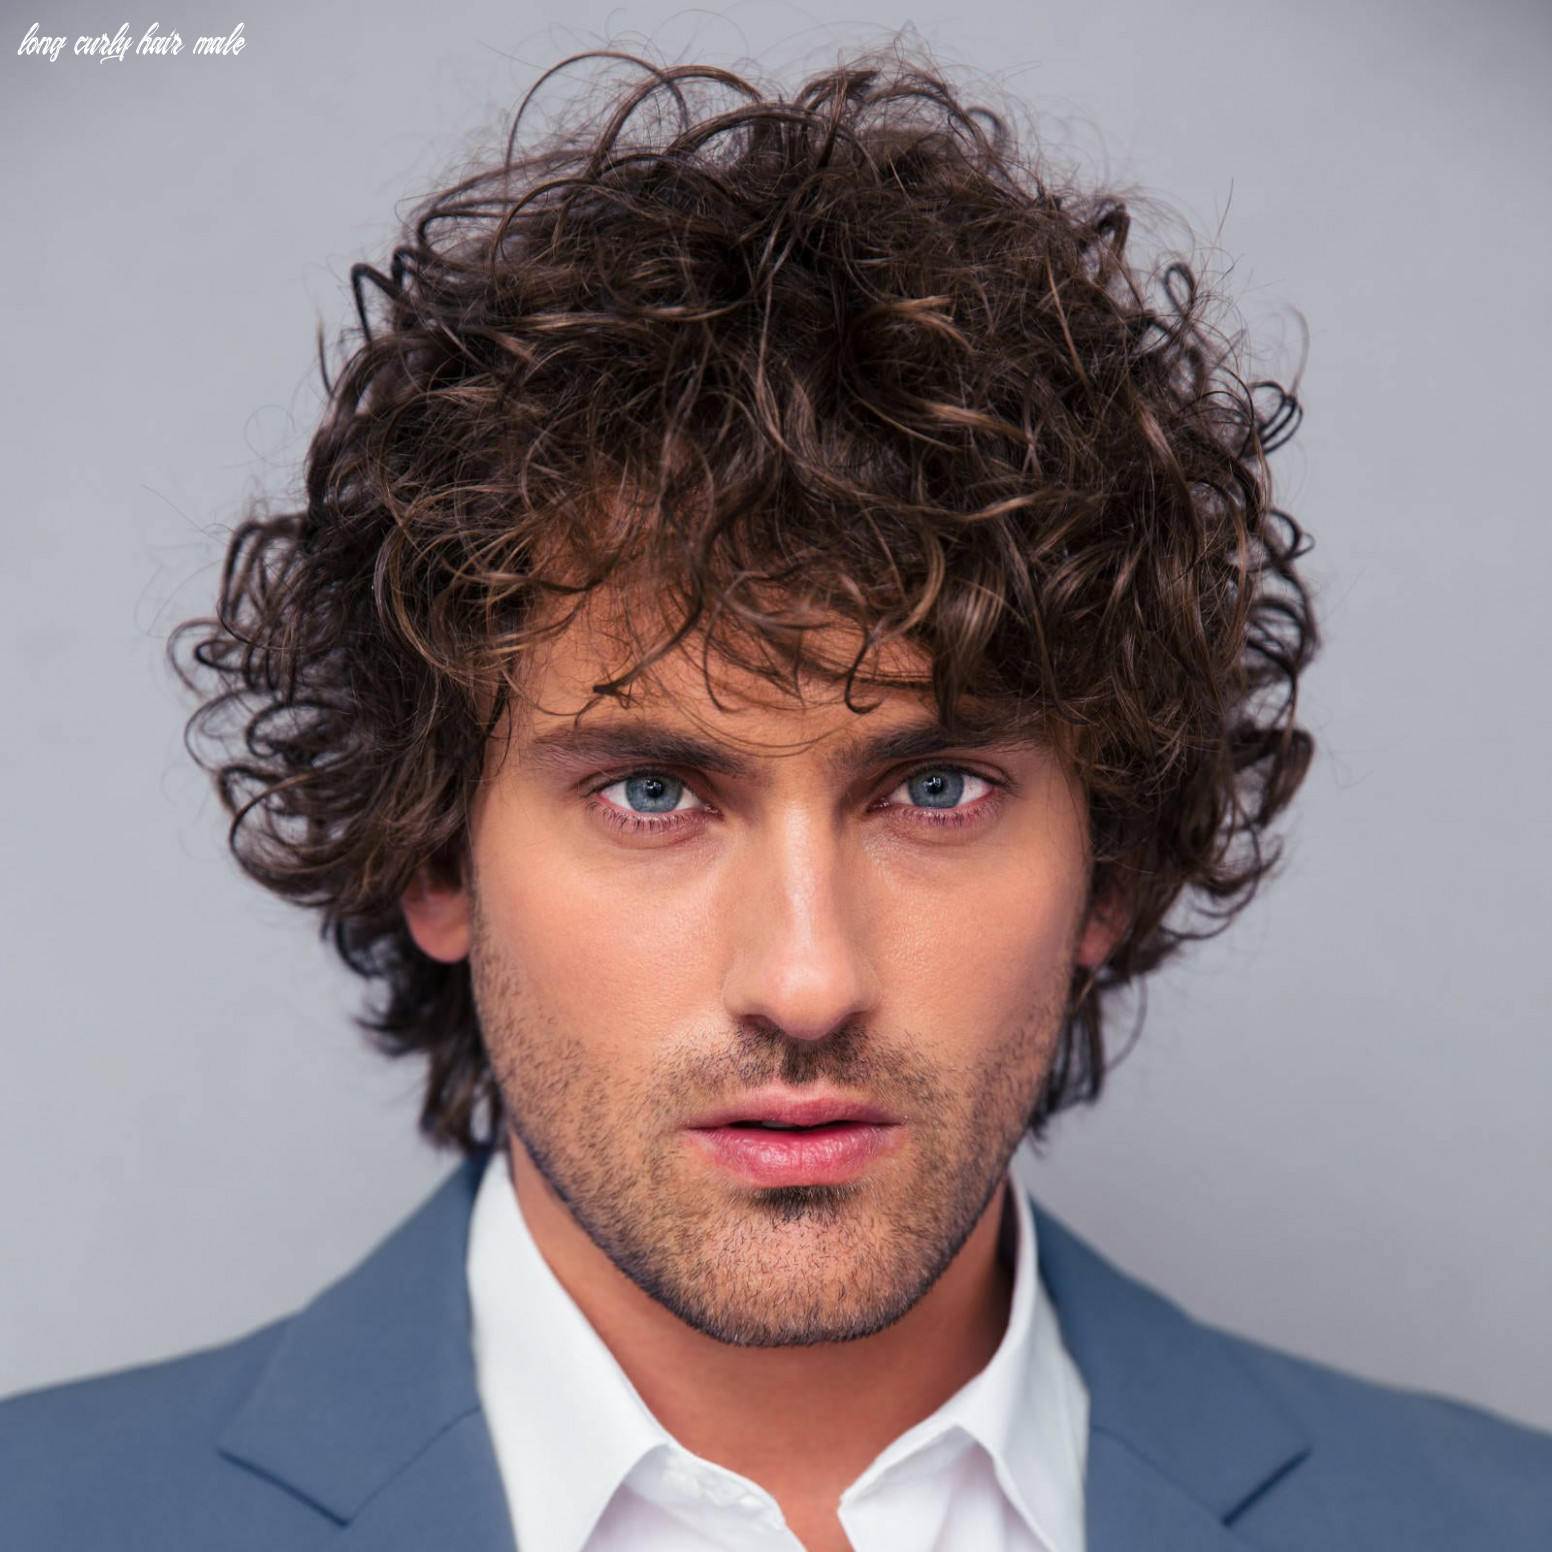 The 11 best curly hairstyles for men   improb long curly hair male